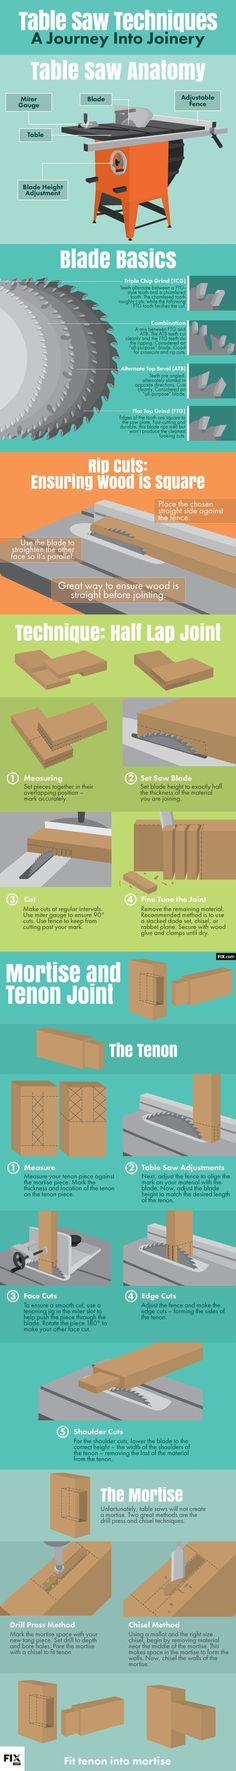 Woodworking Tips Joining wood can be simple on a table saw. Create seamless, beautiful joints for all your construction projects. - Joining wood can be simple on a table saw. Create seamless, beautiful joints for all your construction projects. Woodworking Table Plans, Best Woodworking Tools, Woodworking Techniques, Teds Woodworking, Woodworking Crafts, Woodworking Furniture, Woodworking Beginner, Woodworking Organization, Japanese Woodworking